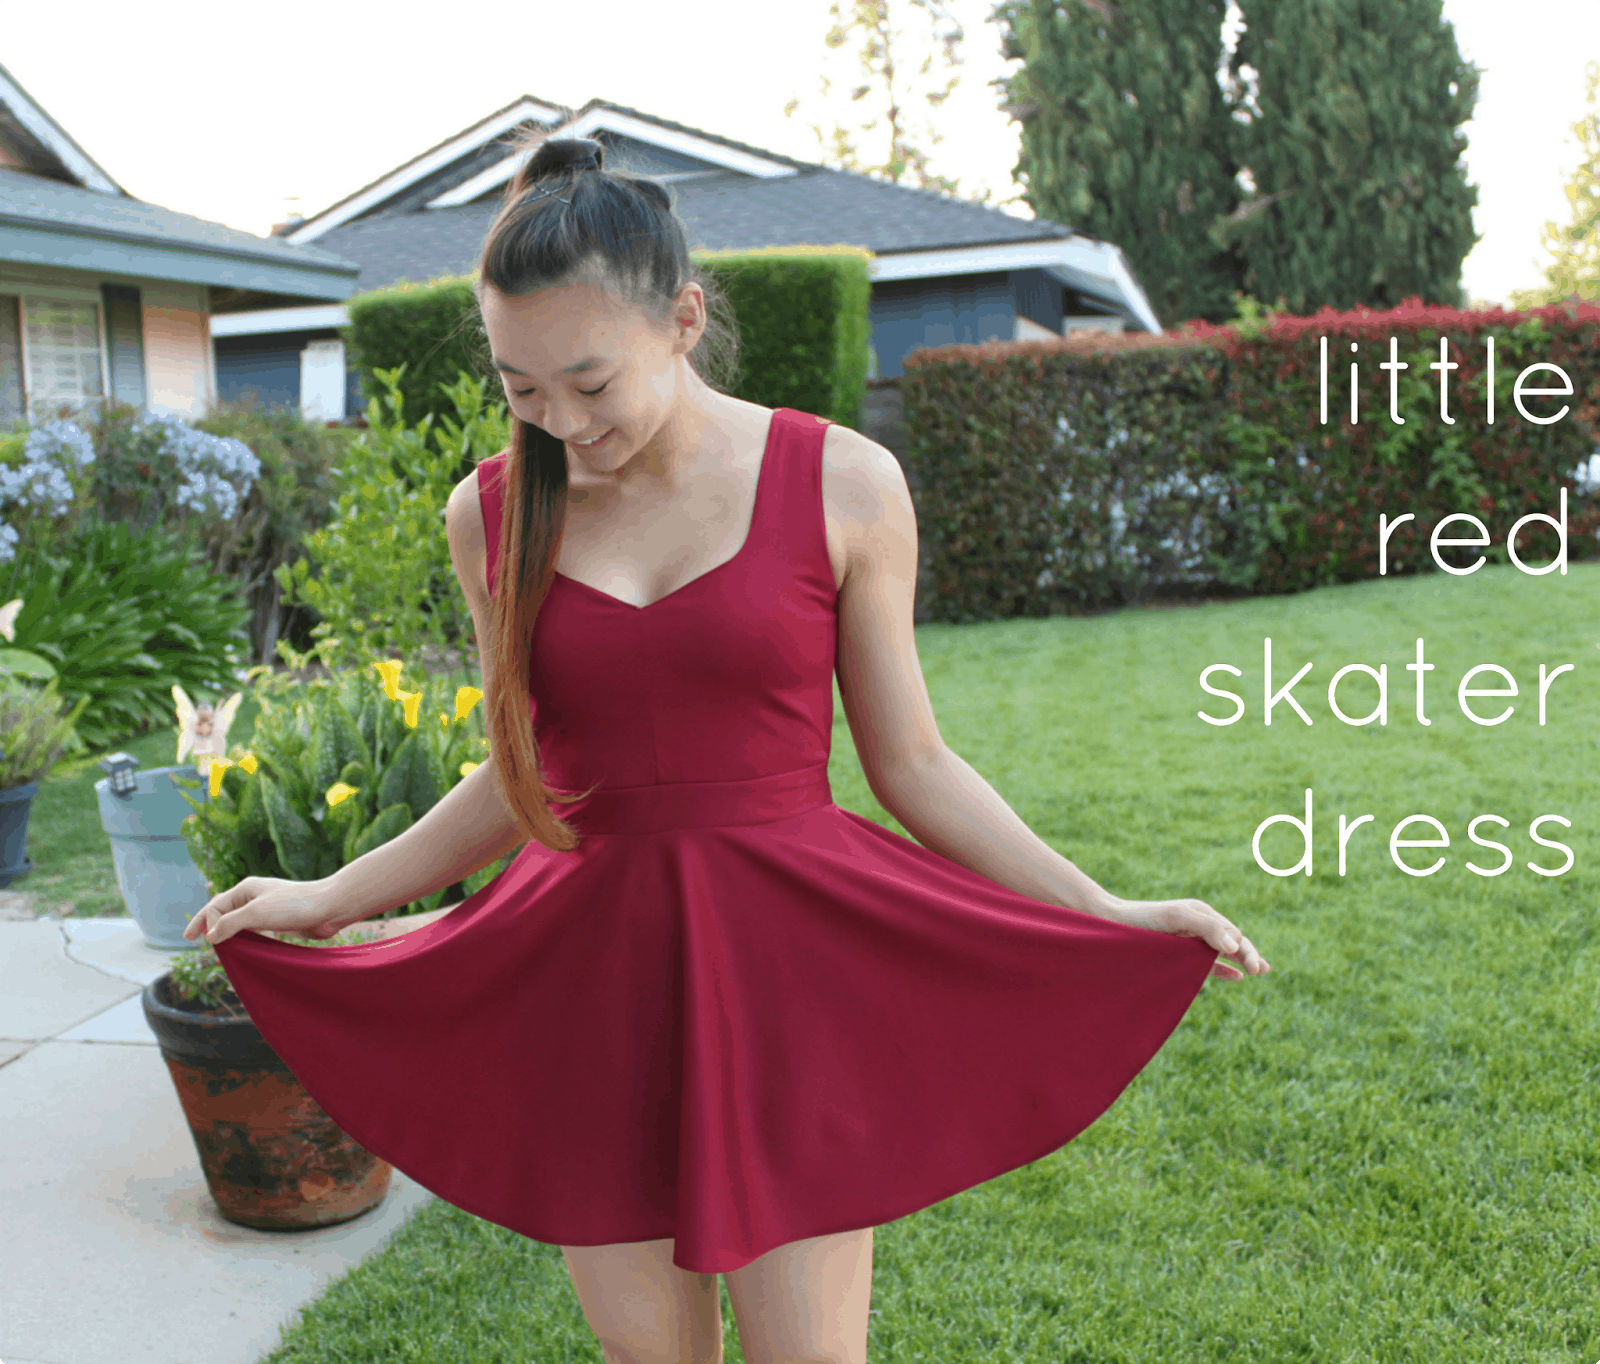 Diy little red skater dress